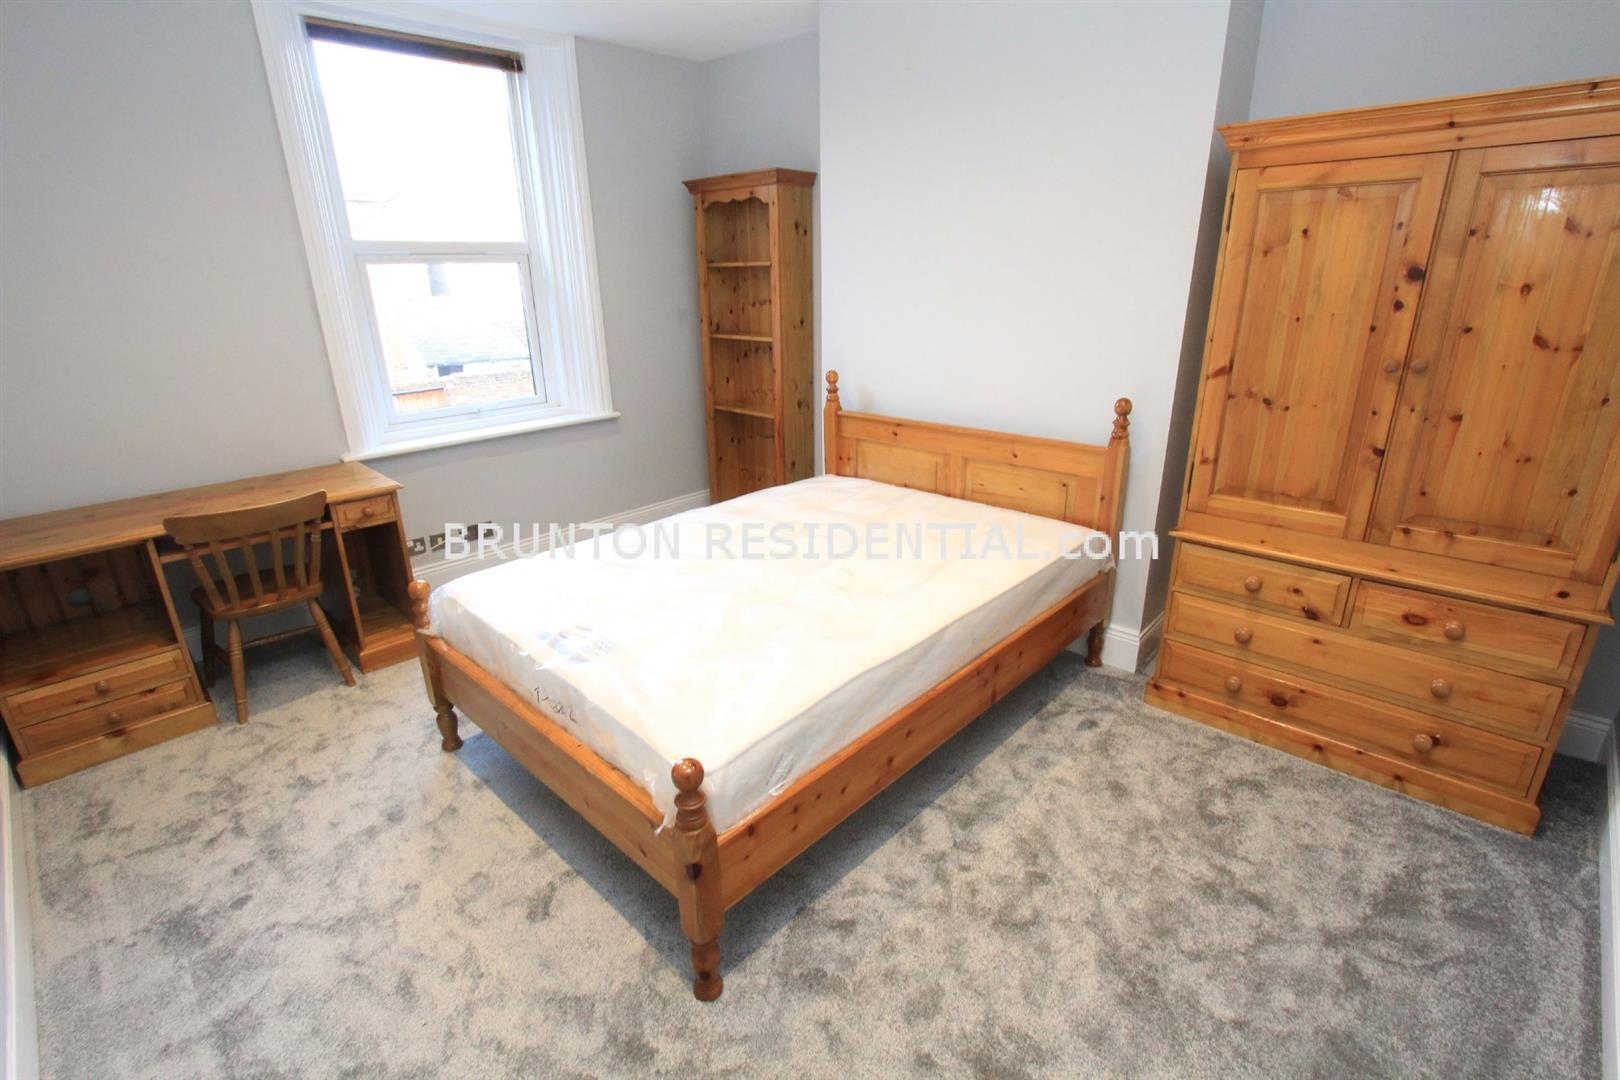 1 bed house share to rent in Newcastle Upon Tyne, NE6 5HU - Property Image 1